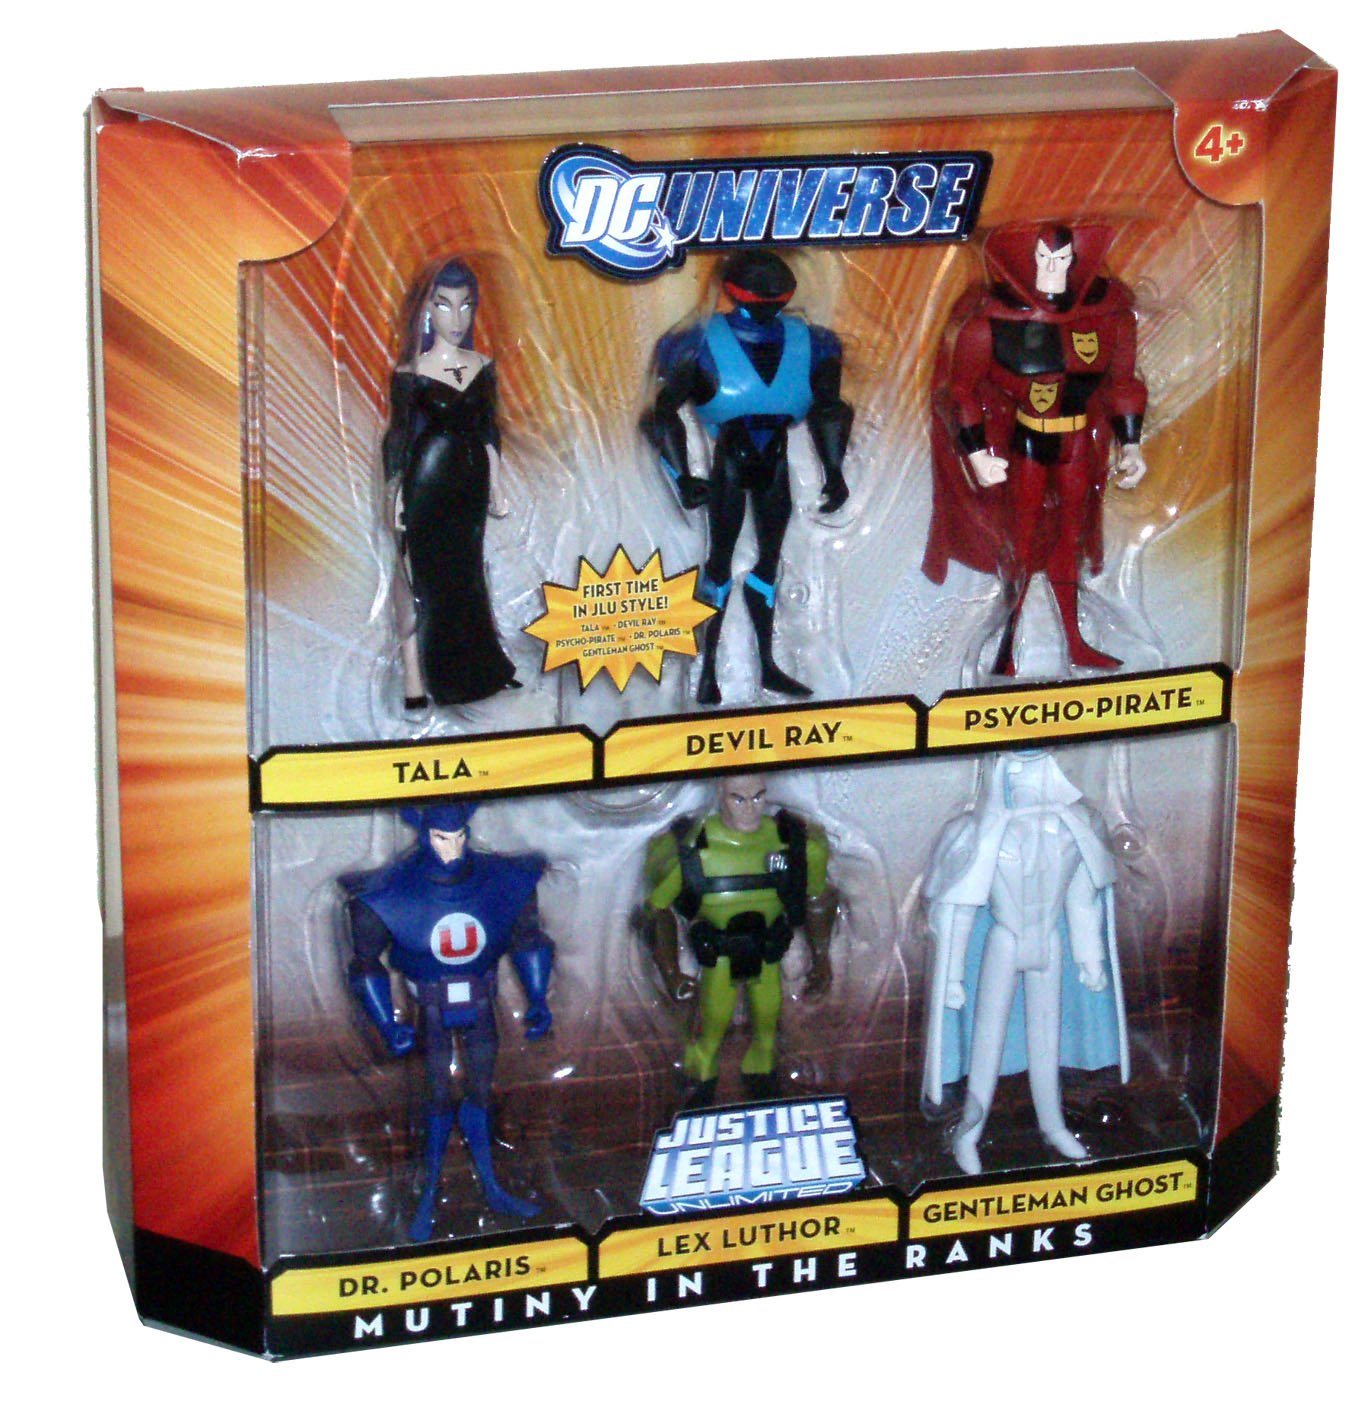 DC Universe Justice League Unlimited 6 Pack 4-1/2 Inch Tall Villain Action Figure - MUTINY IN THE RANKS with Tala, Devil Ray, Psycho-Pirate, Dr. Polaris, Lex Luthor and Gentleman Ghost